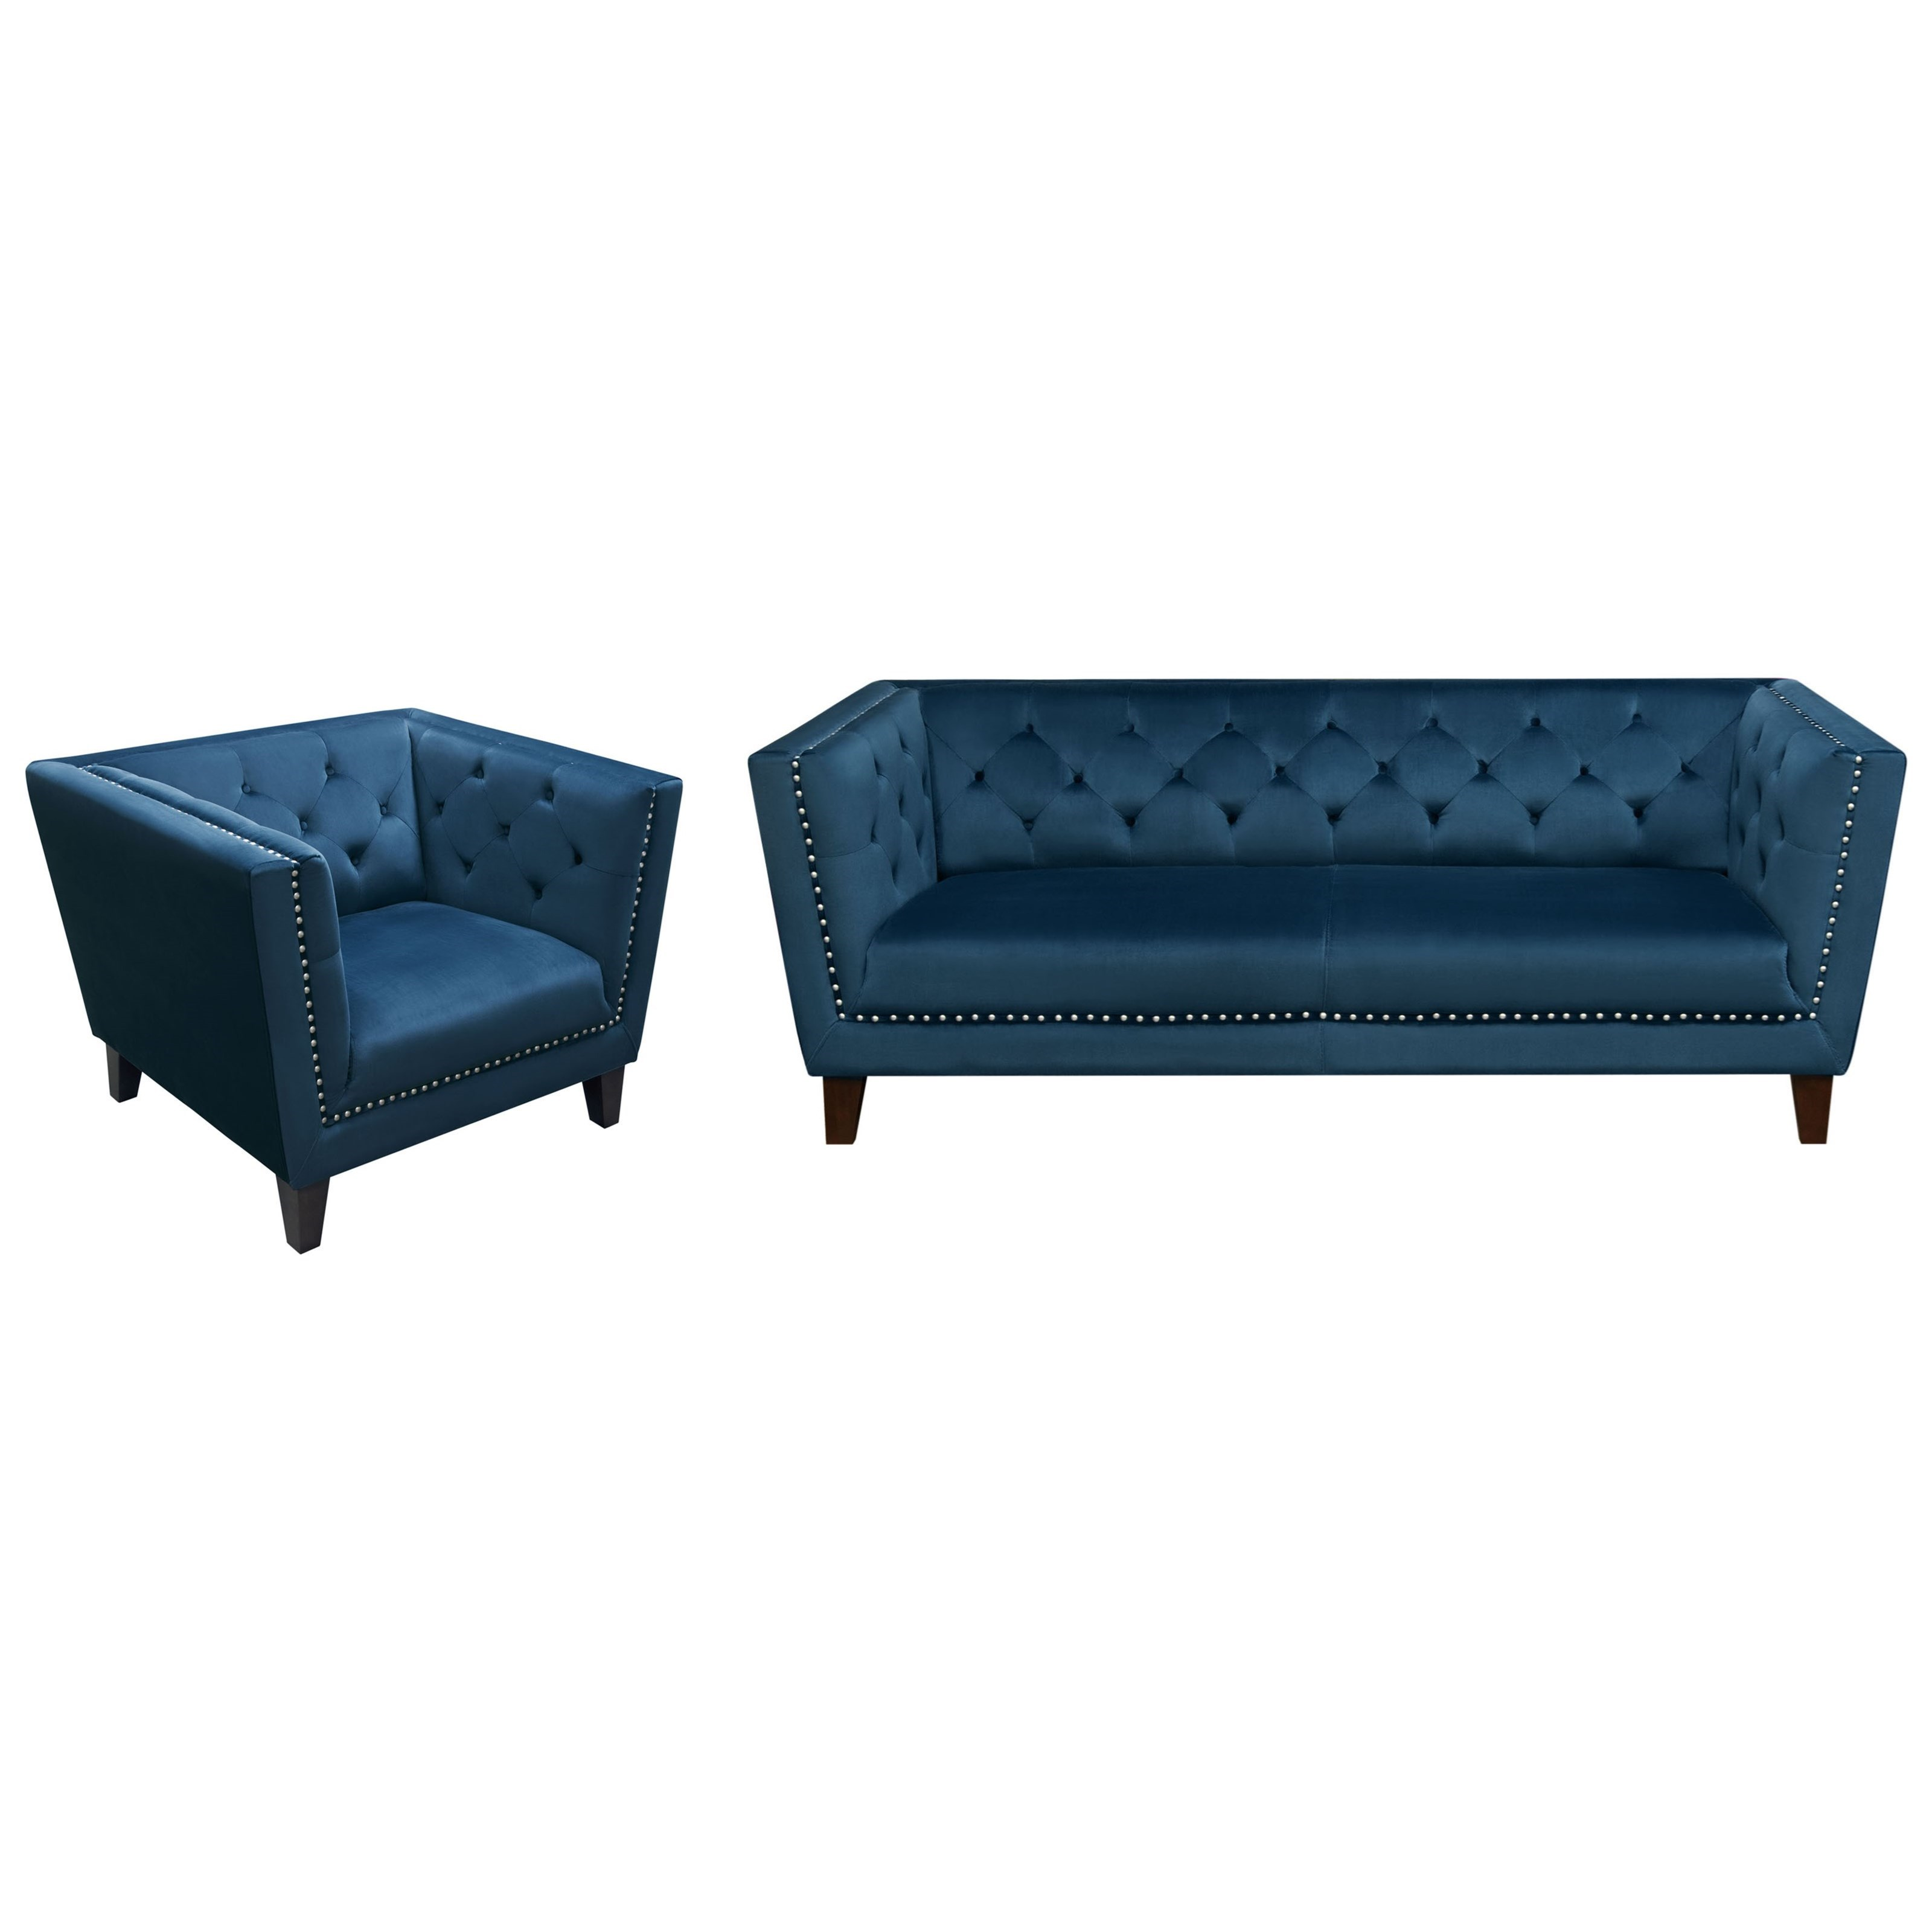 Tufted Back Sofa and Chair Set